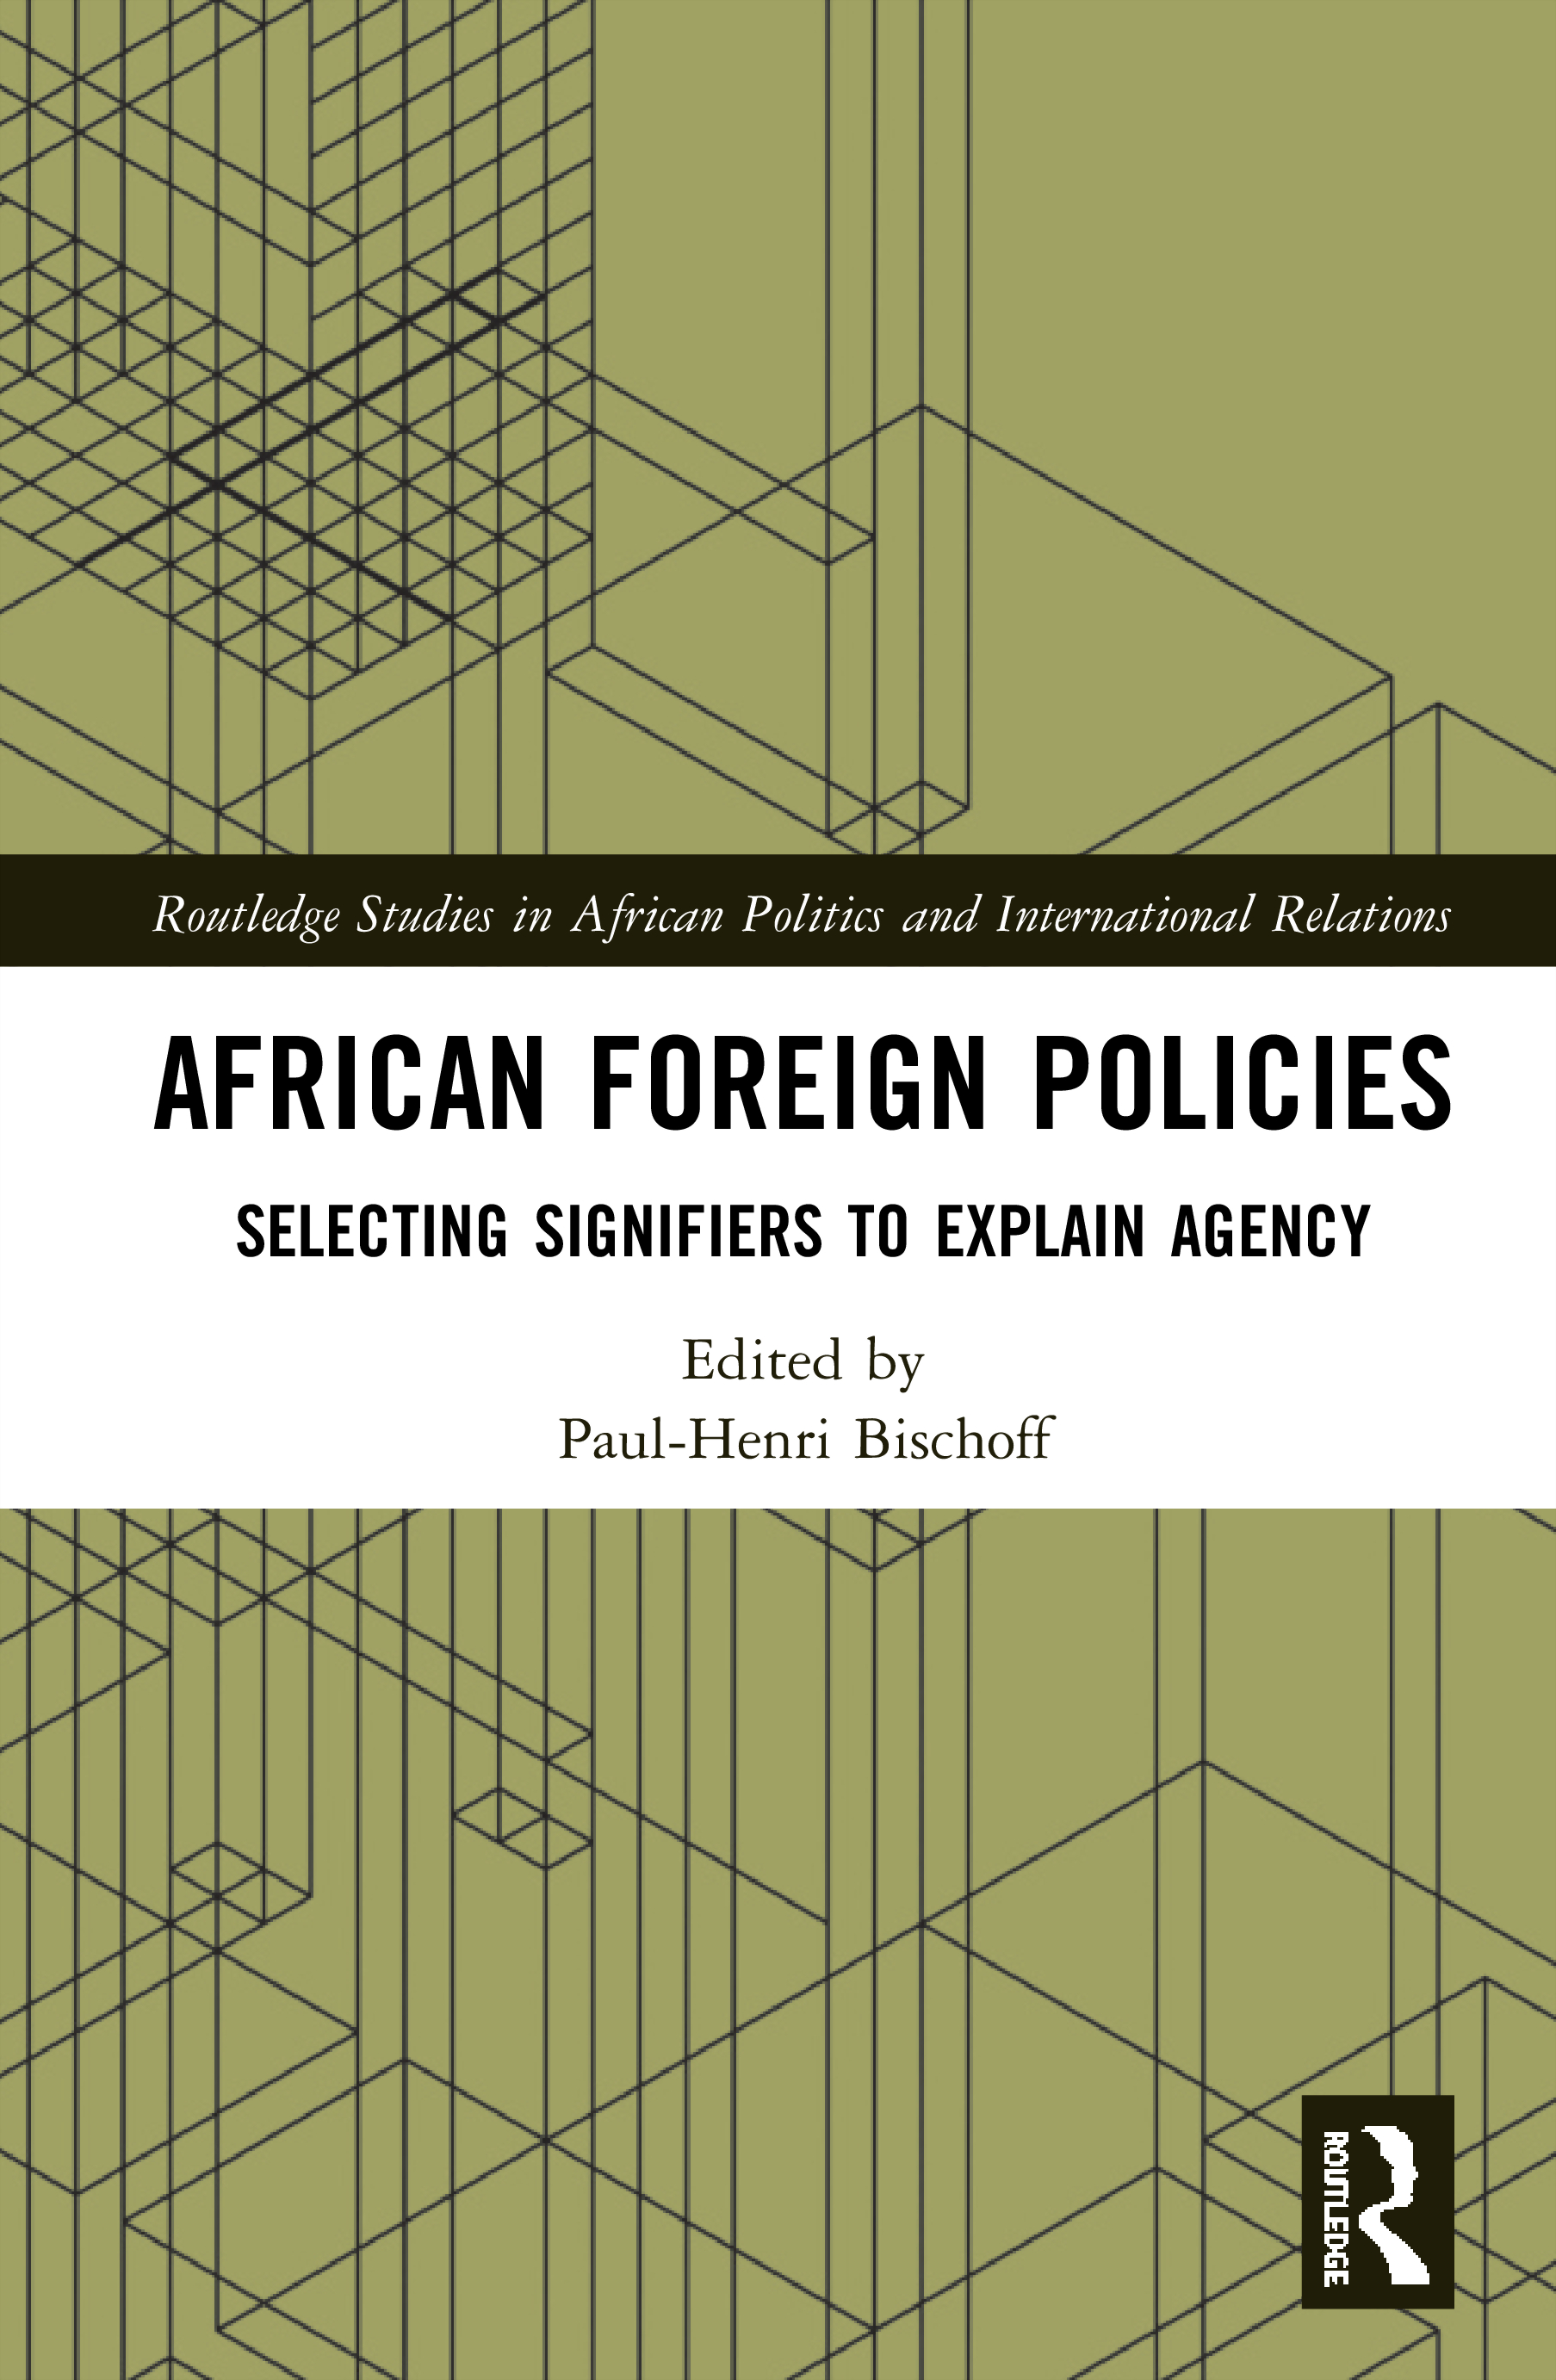 African Foreign Policies: Selecting Signifiers to Explain Agency, 1st Edition (Hardback) book cover